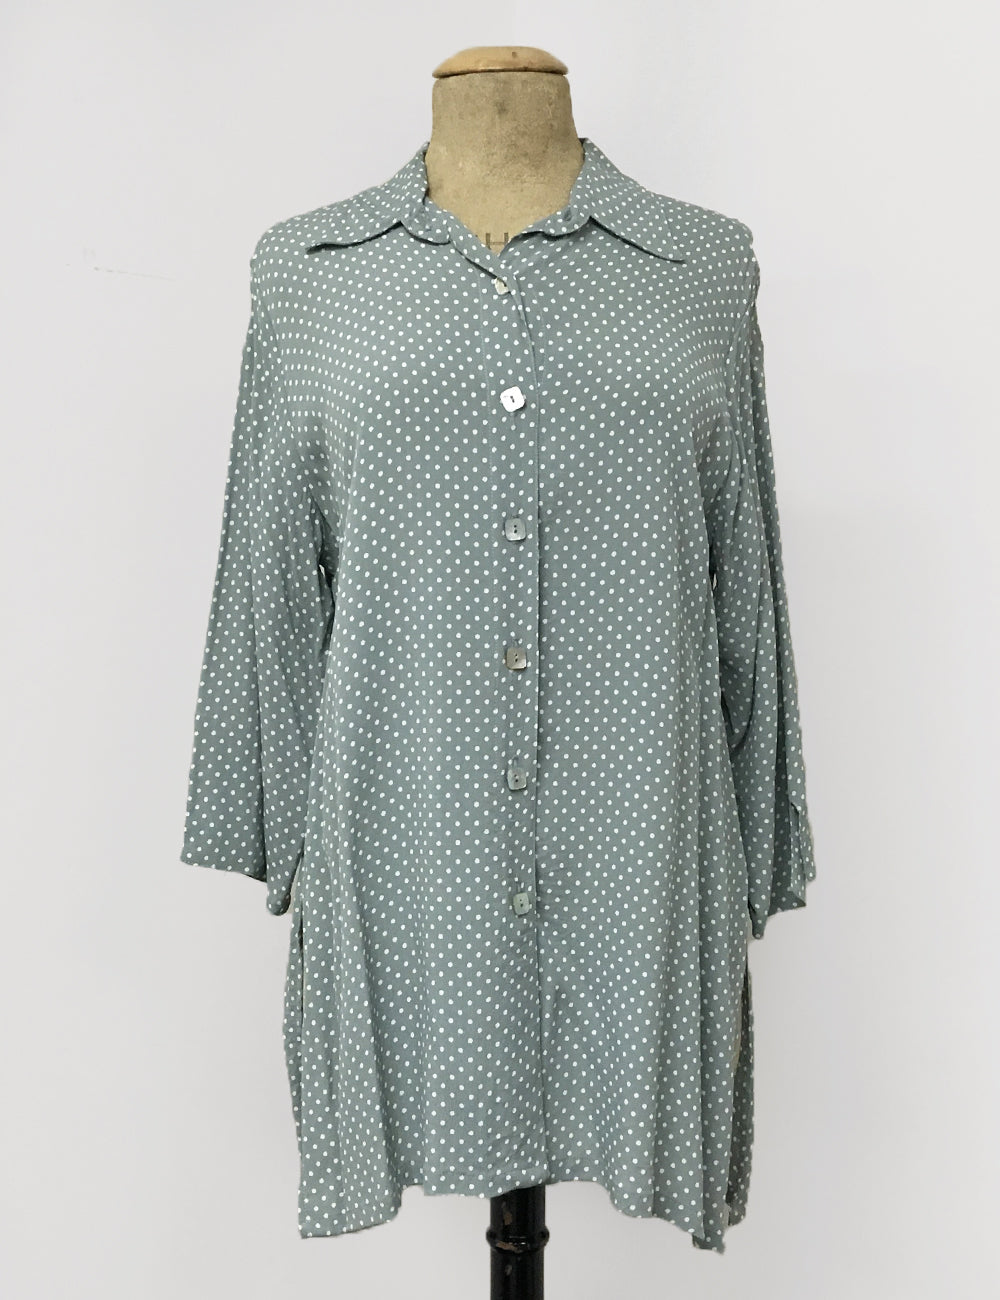 Celadon Green Polka Dot Button Up Frankie Flyaway Top